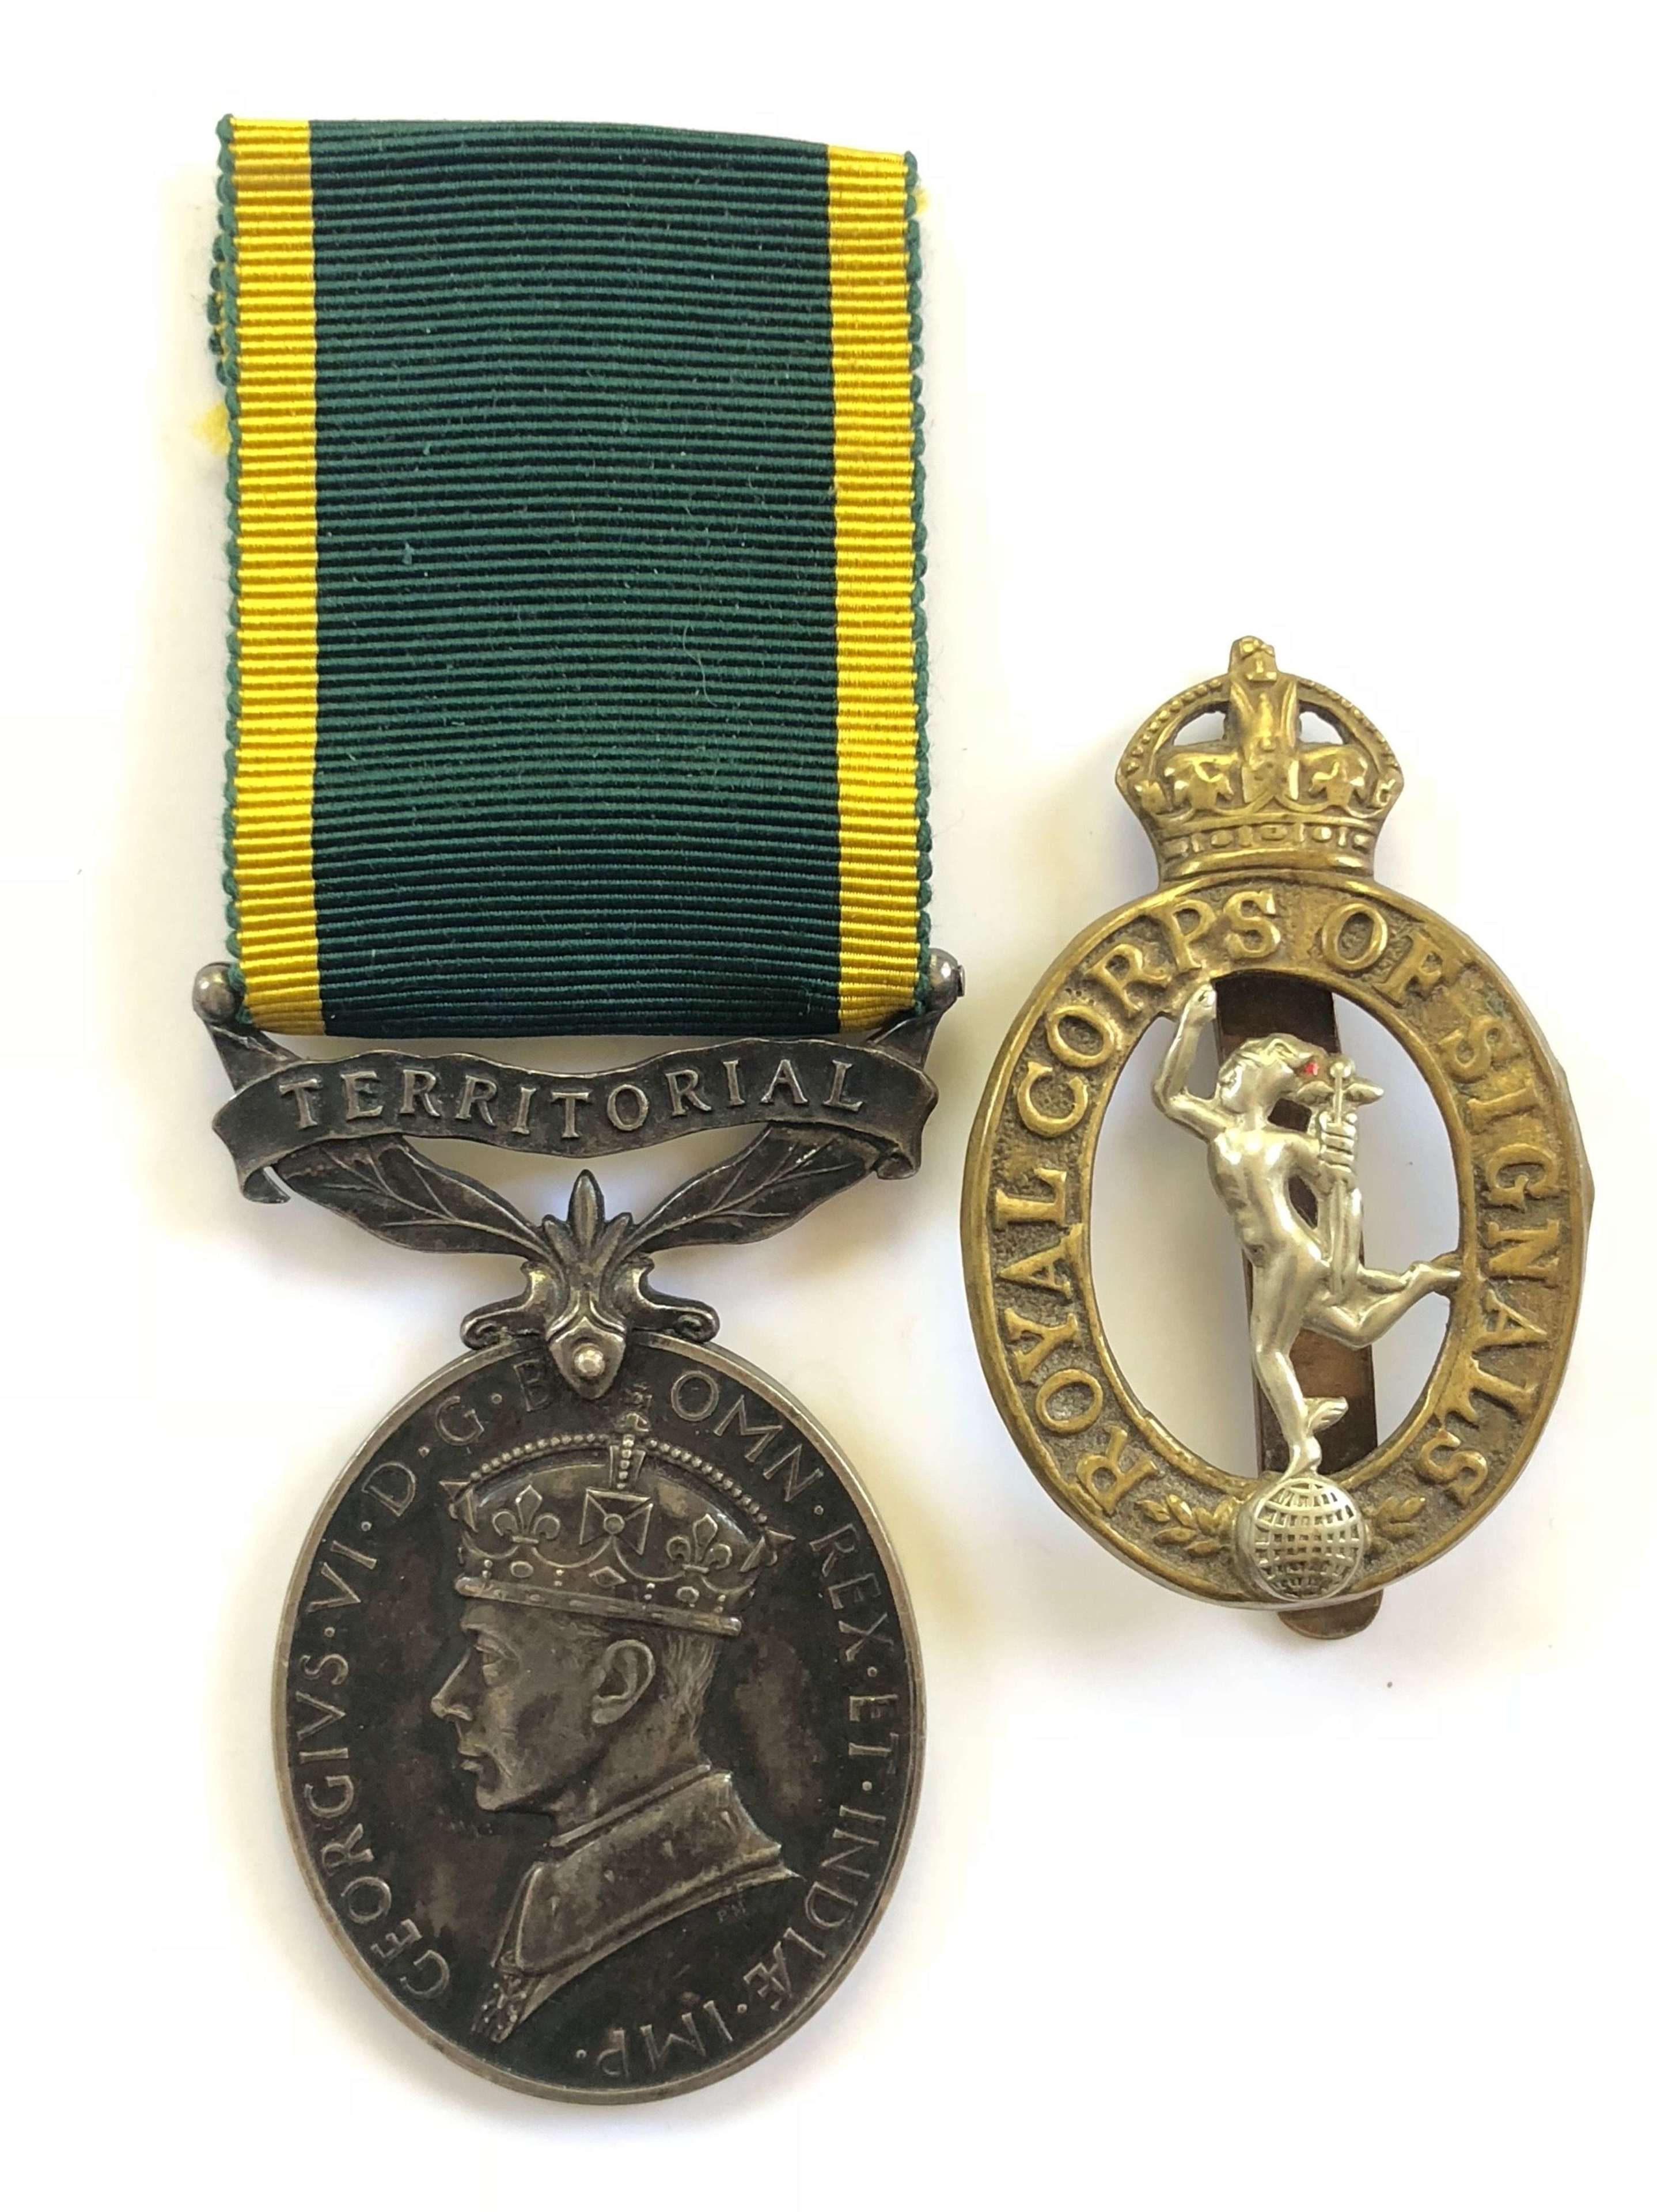 Royal Corps of Signals Territorial Efficiency Medal.